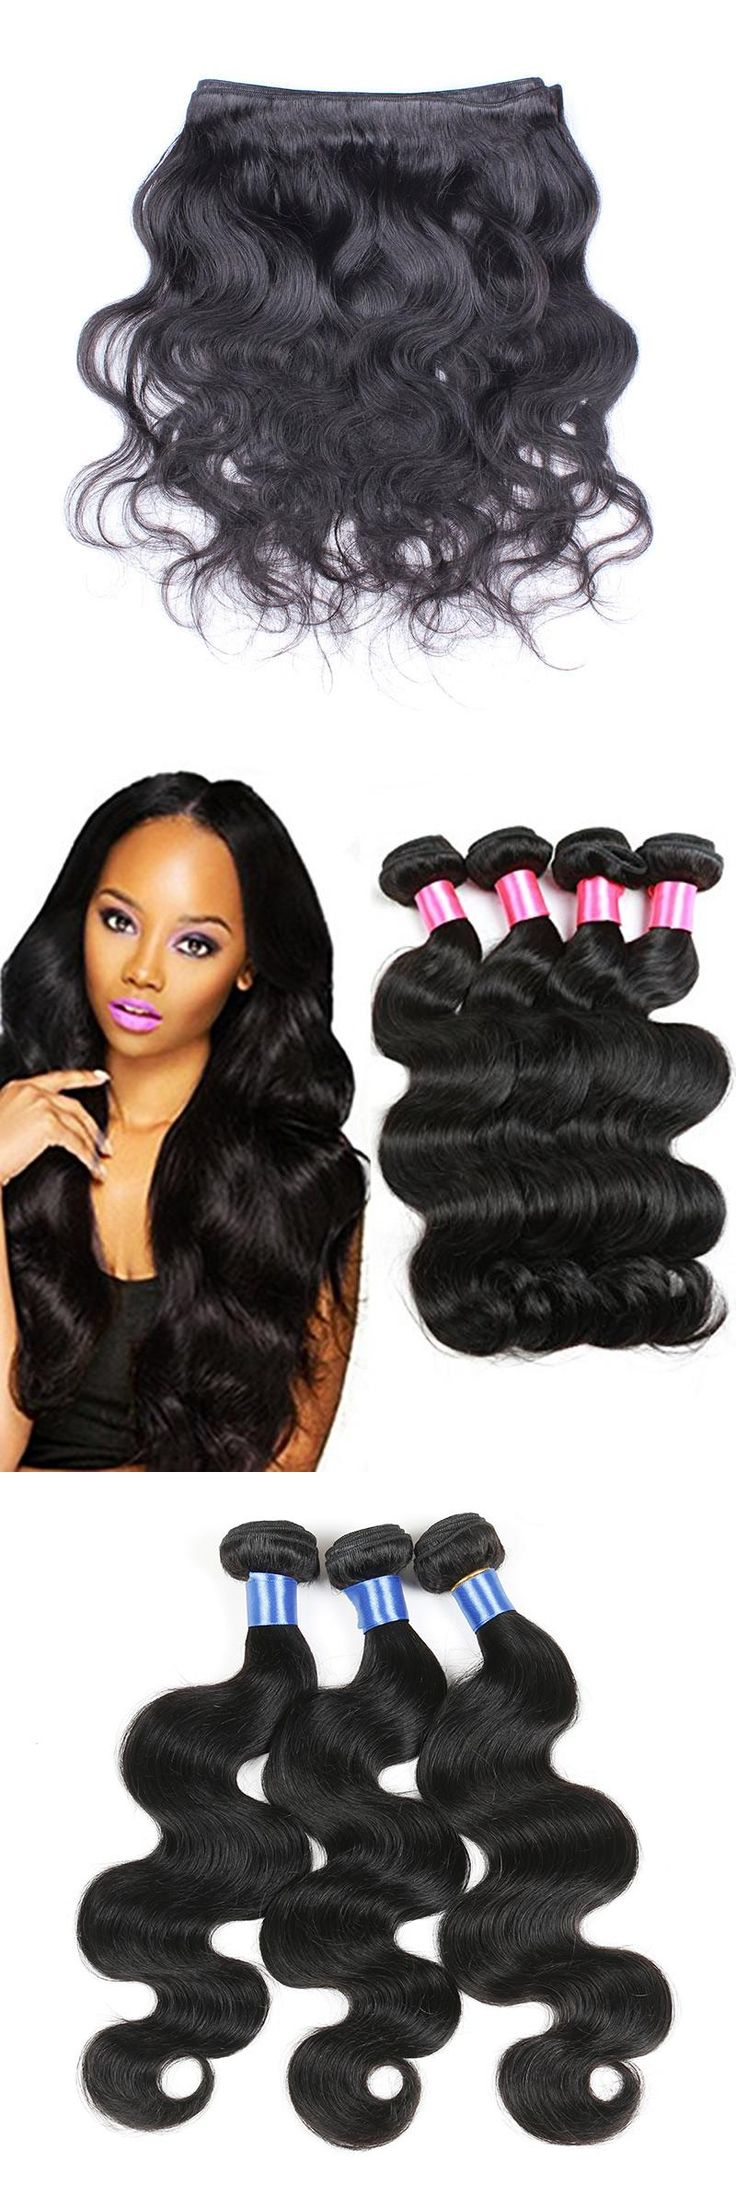 Best 25 waves bundle ideas on pinterest good hair extensions brazilian body wave 3 bundle virgin hair tangle free 7a 100 unprocessed human hair weaves pmusecretfo Image collections